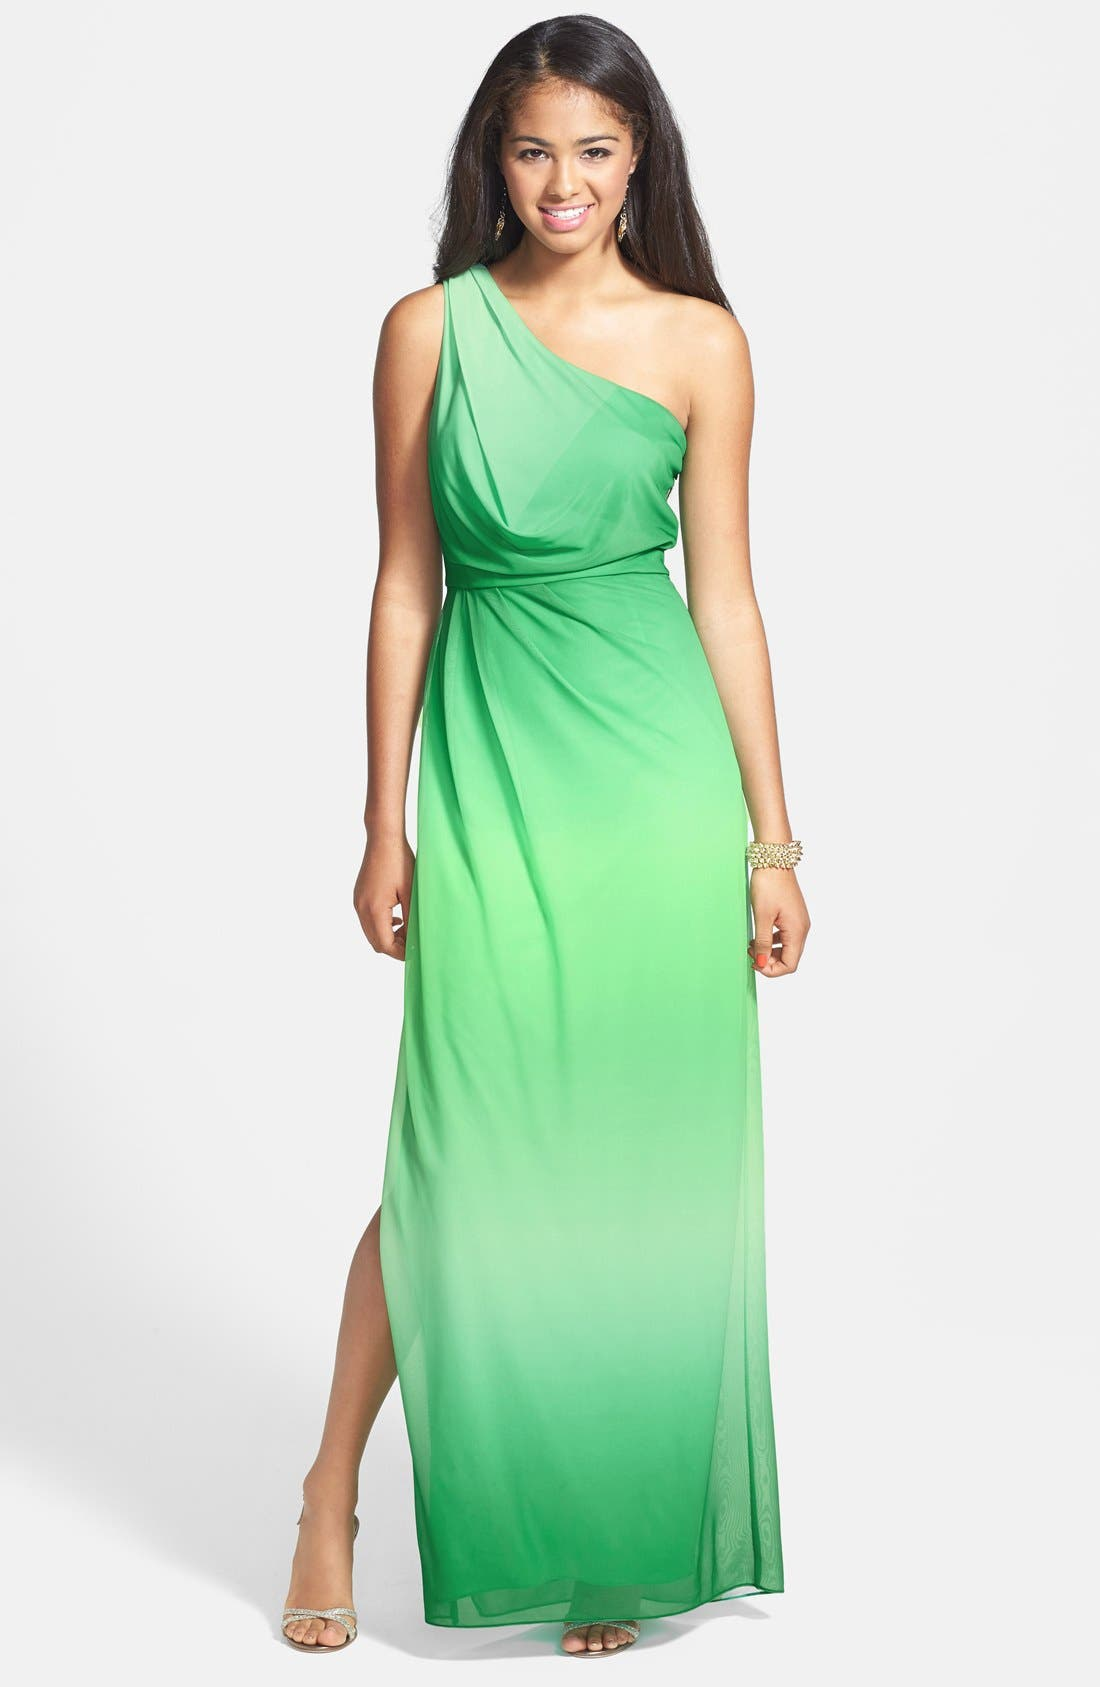 Alternate Image 1 Selected - Hailey by Adrianna Papell One-Shoulder Ombré Blouson Jersey Gown